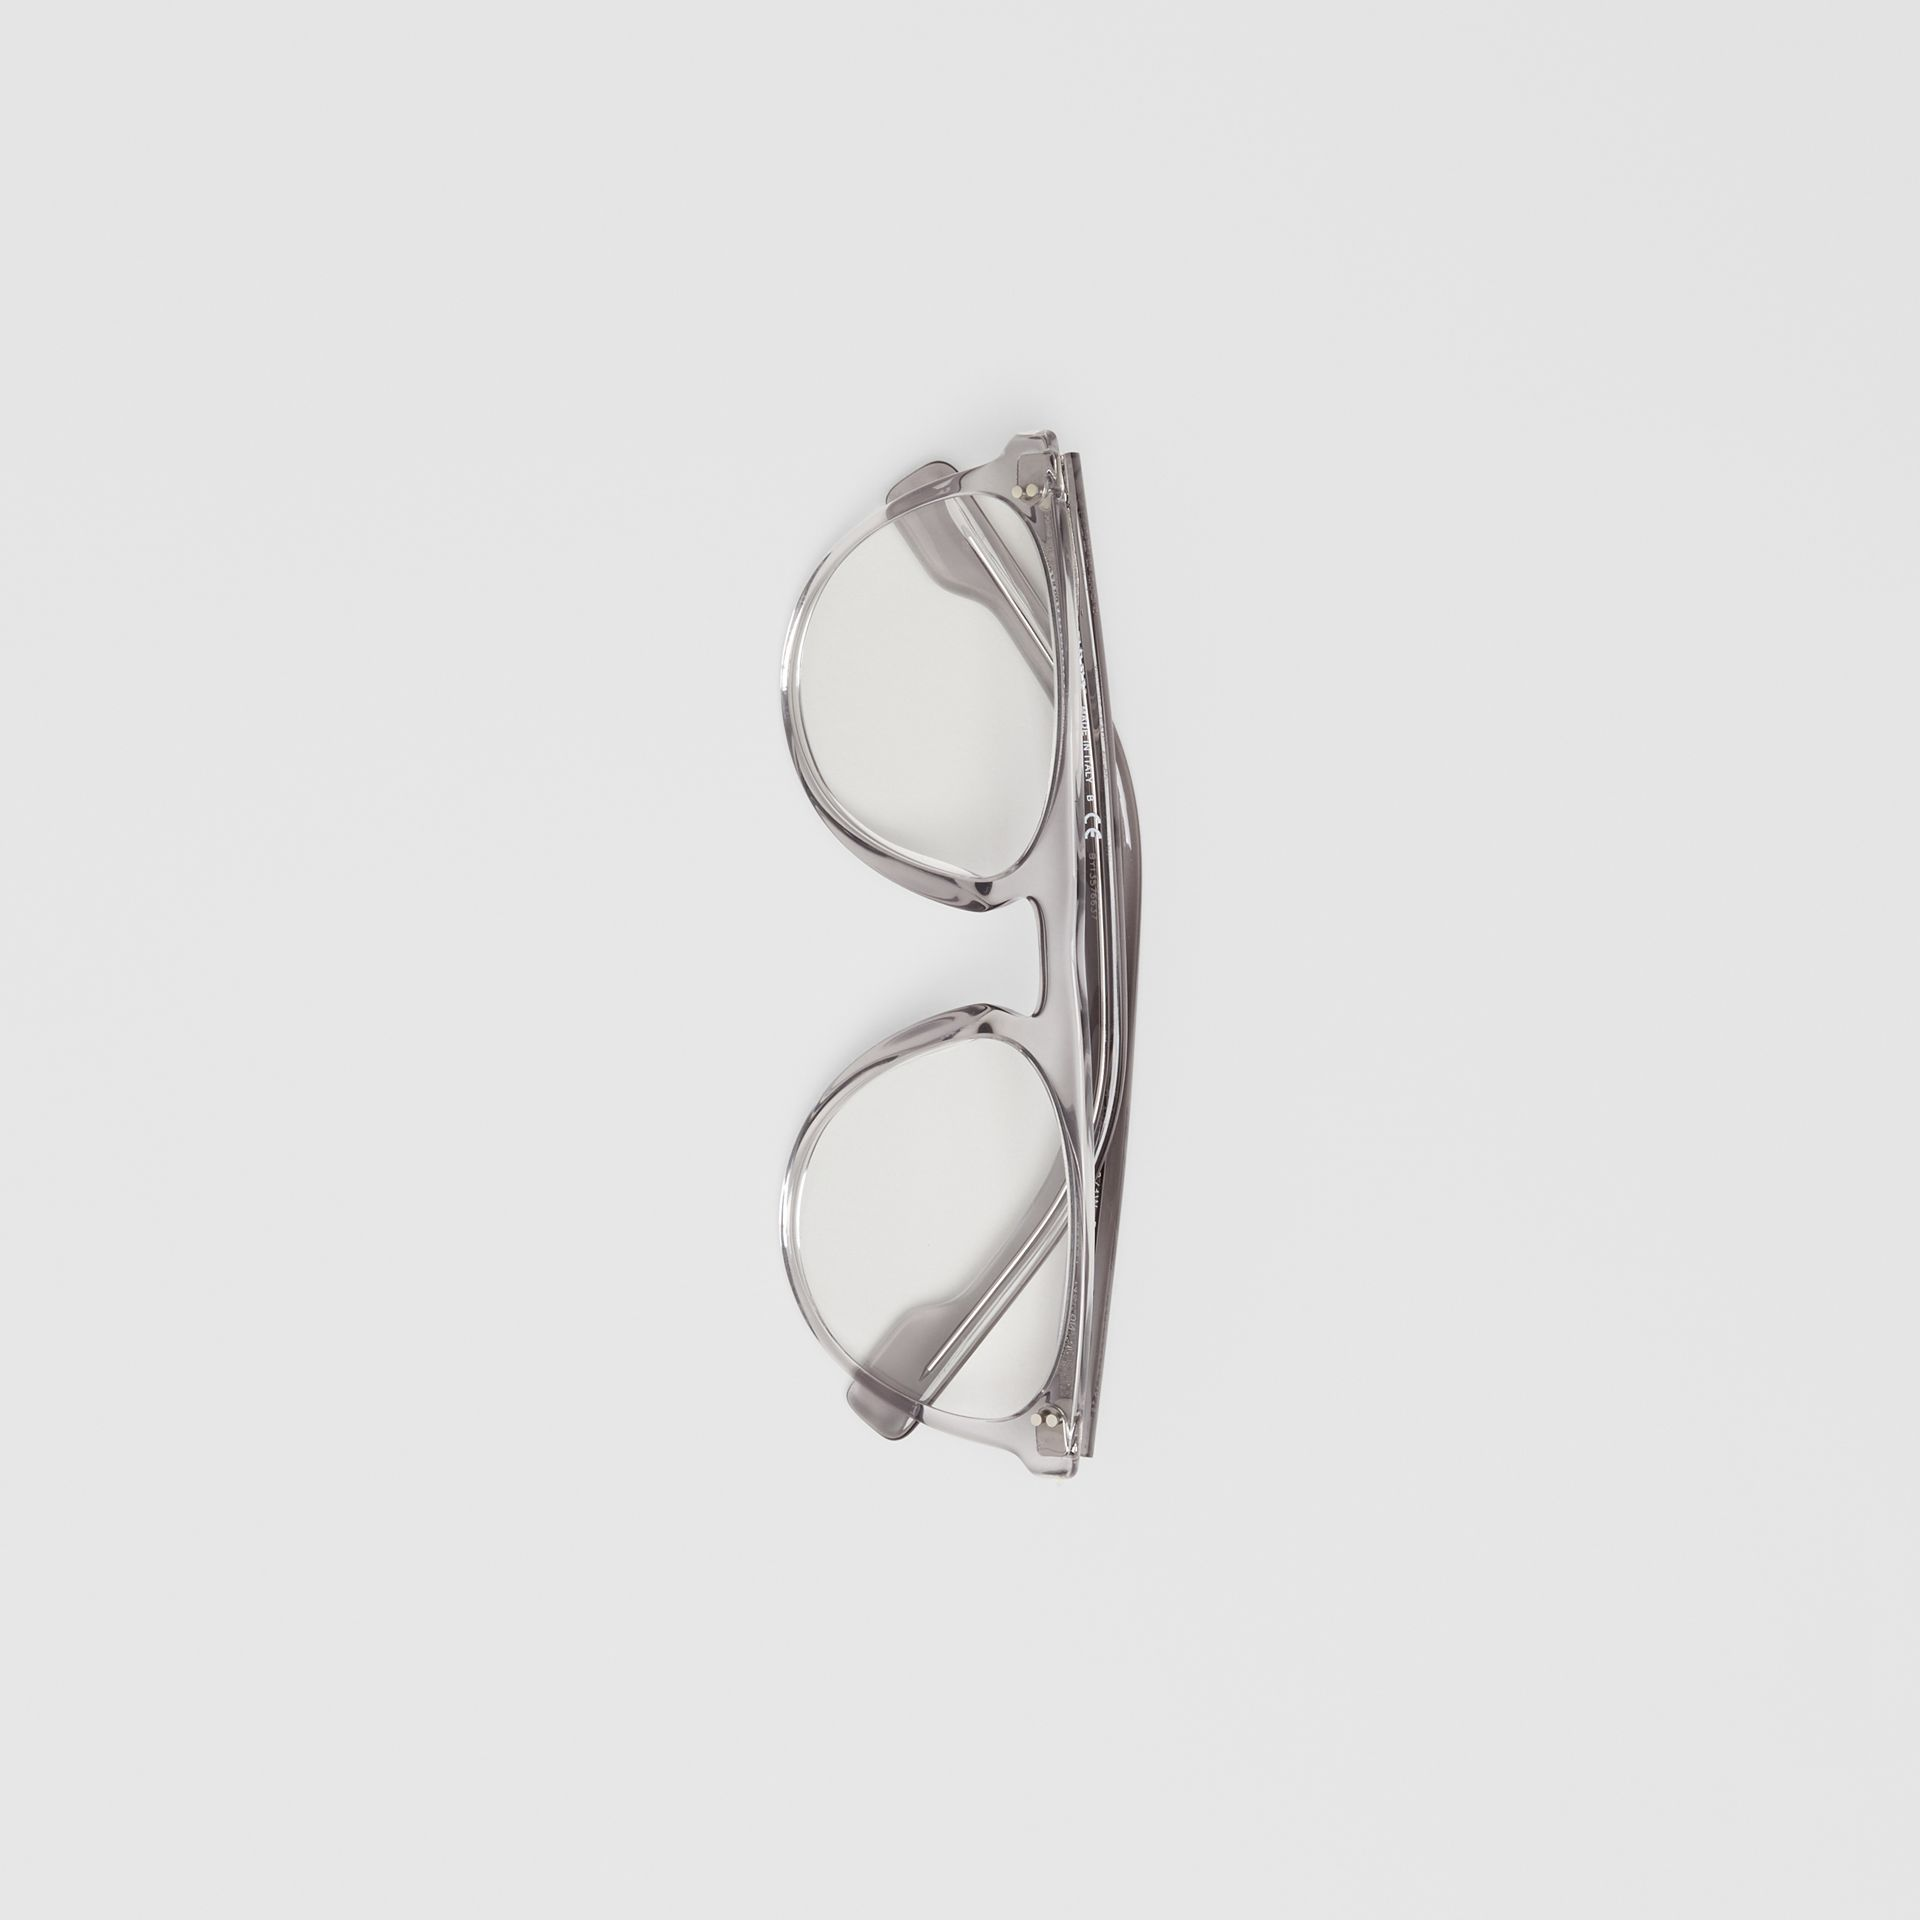 Keyhole D-shaped Optical Frames in Grey - Men | Burberry Singapore - gallery image 3